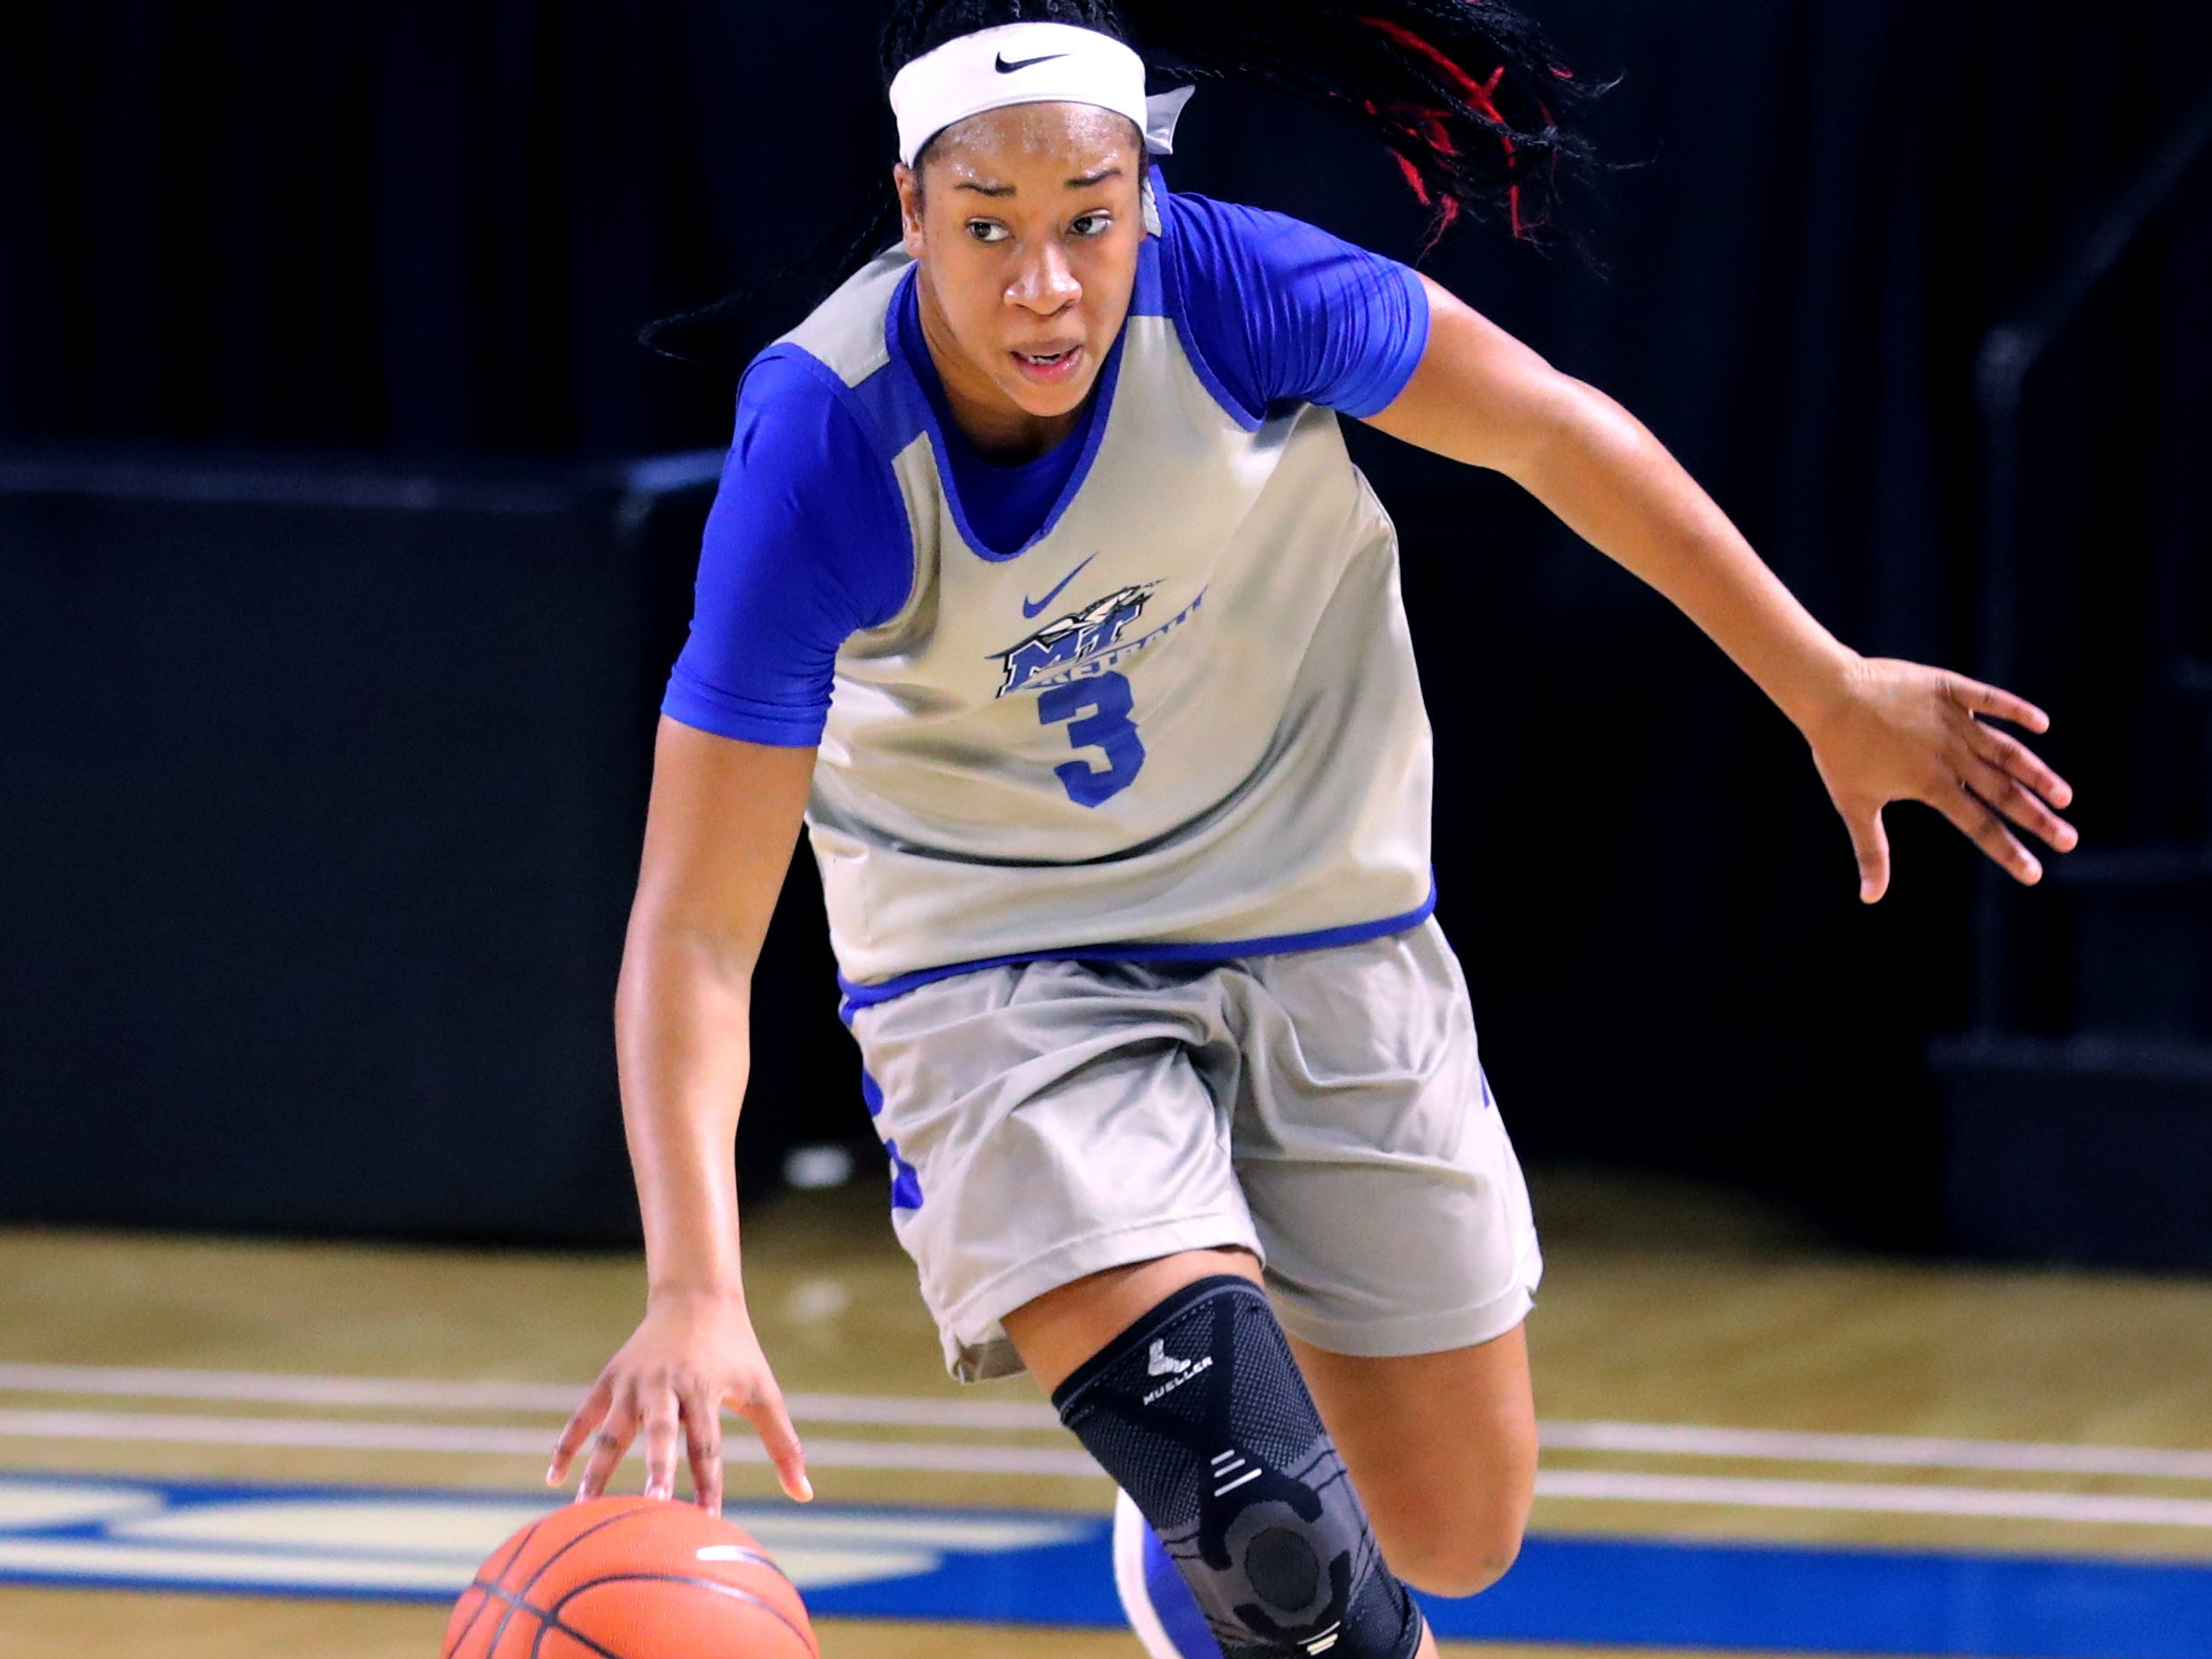 MTSUs Kyla Allison (3) brings the ball down the court women's basketball team practices at Murphy Center on Monday, Nov.. 5, 2018.